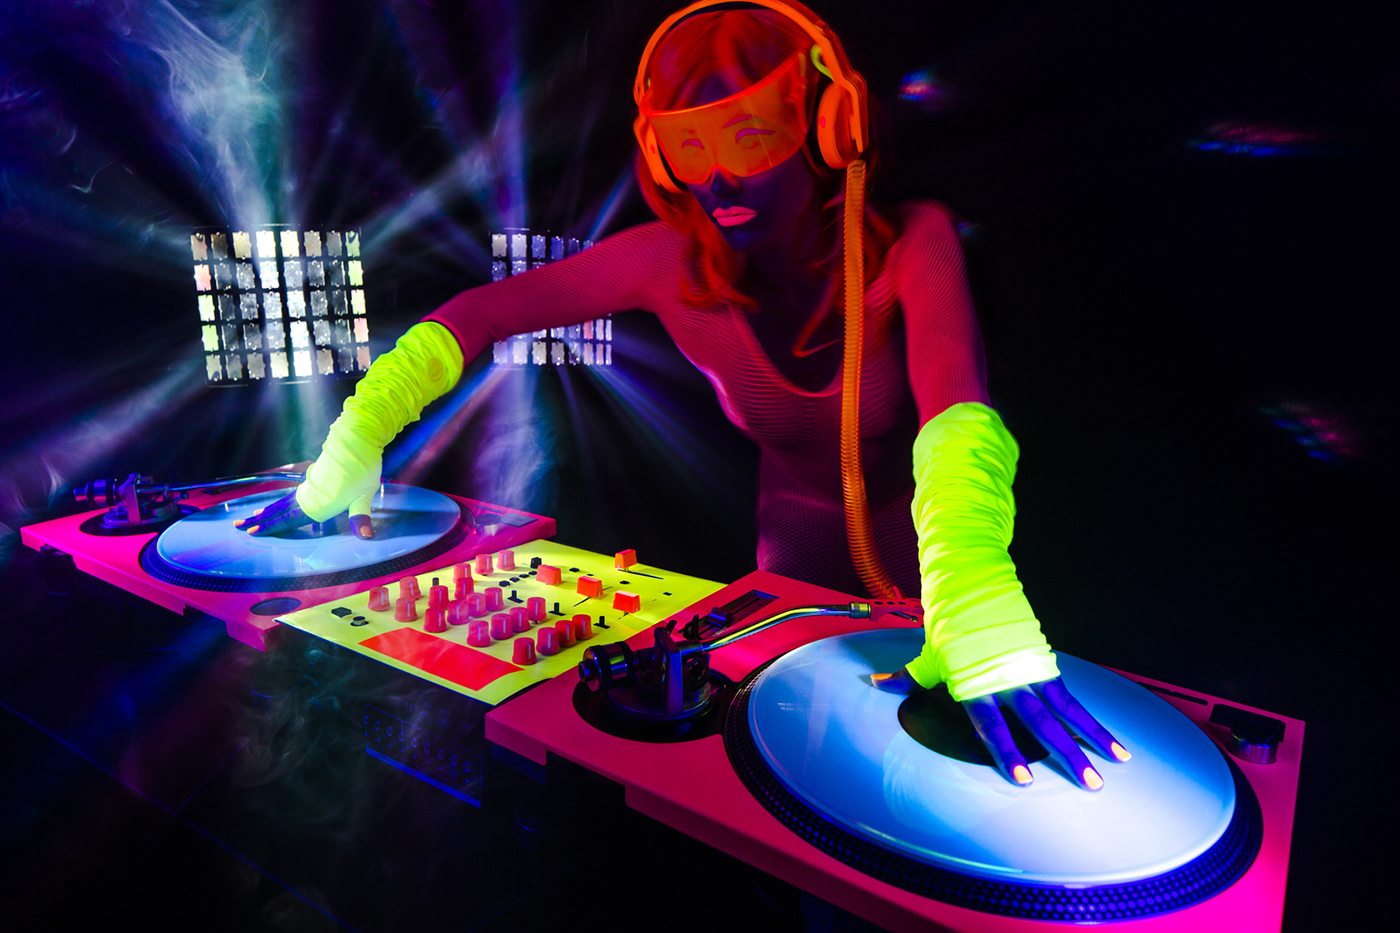 Acid trance dj's night